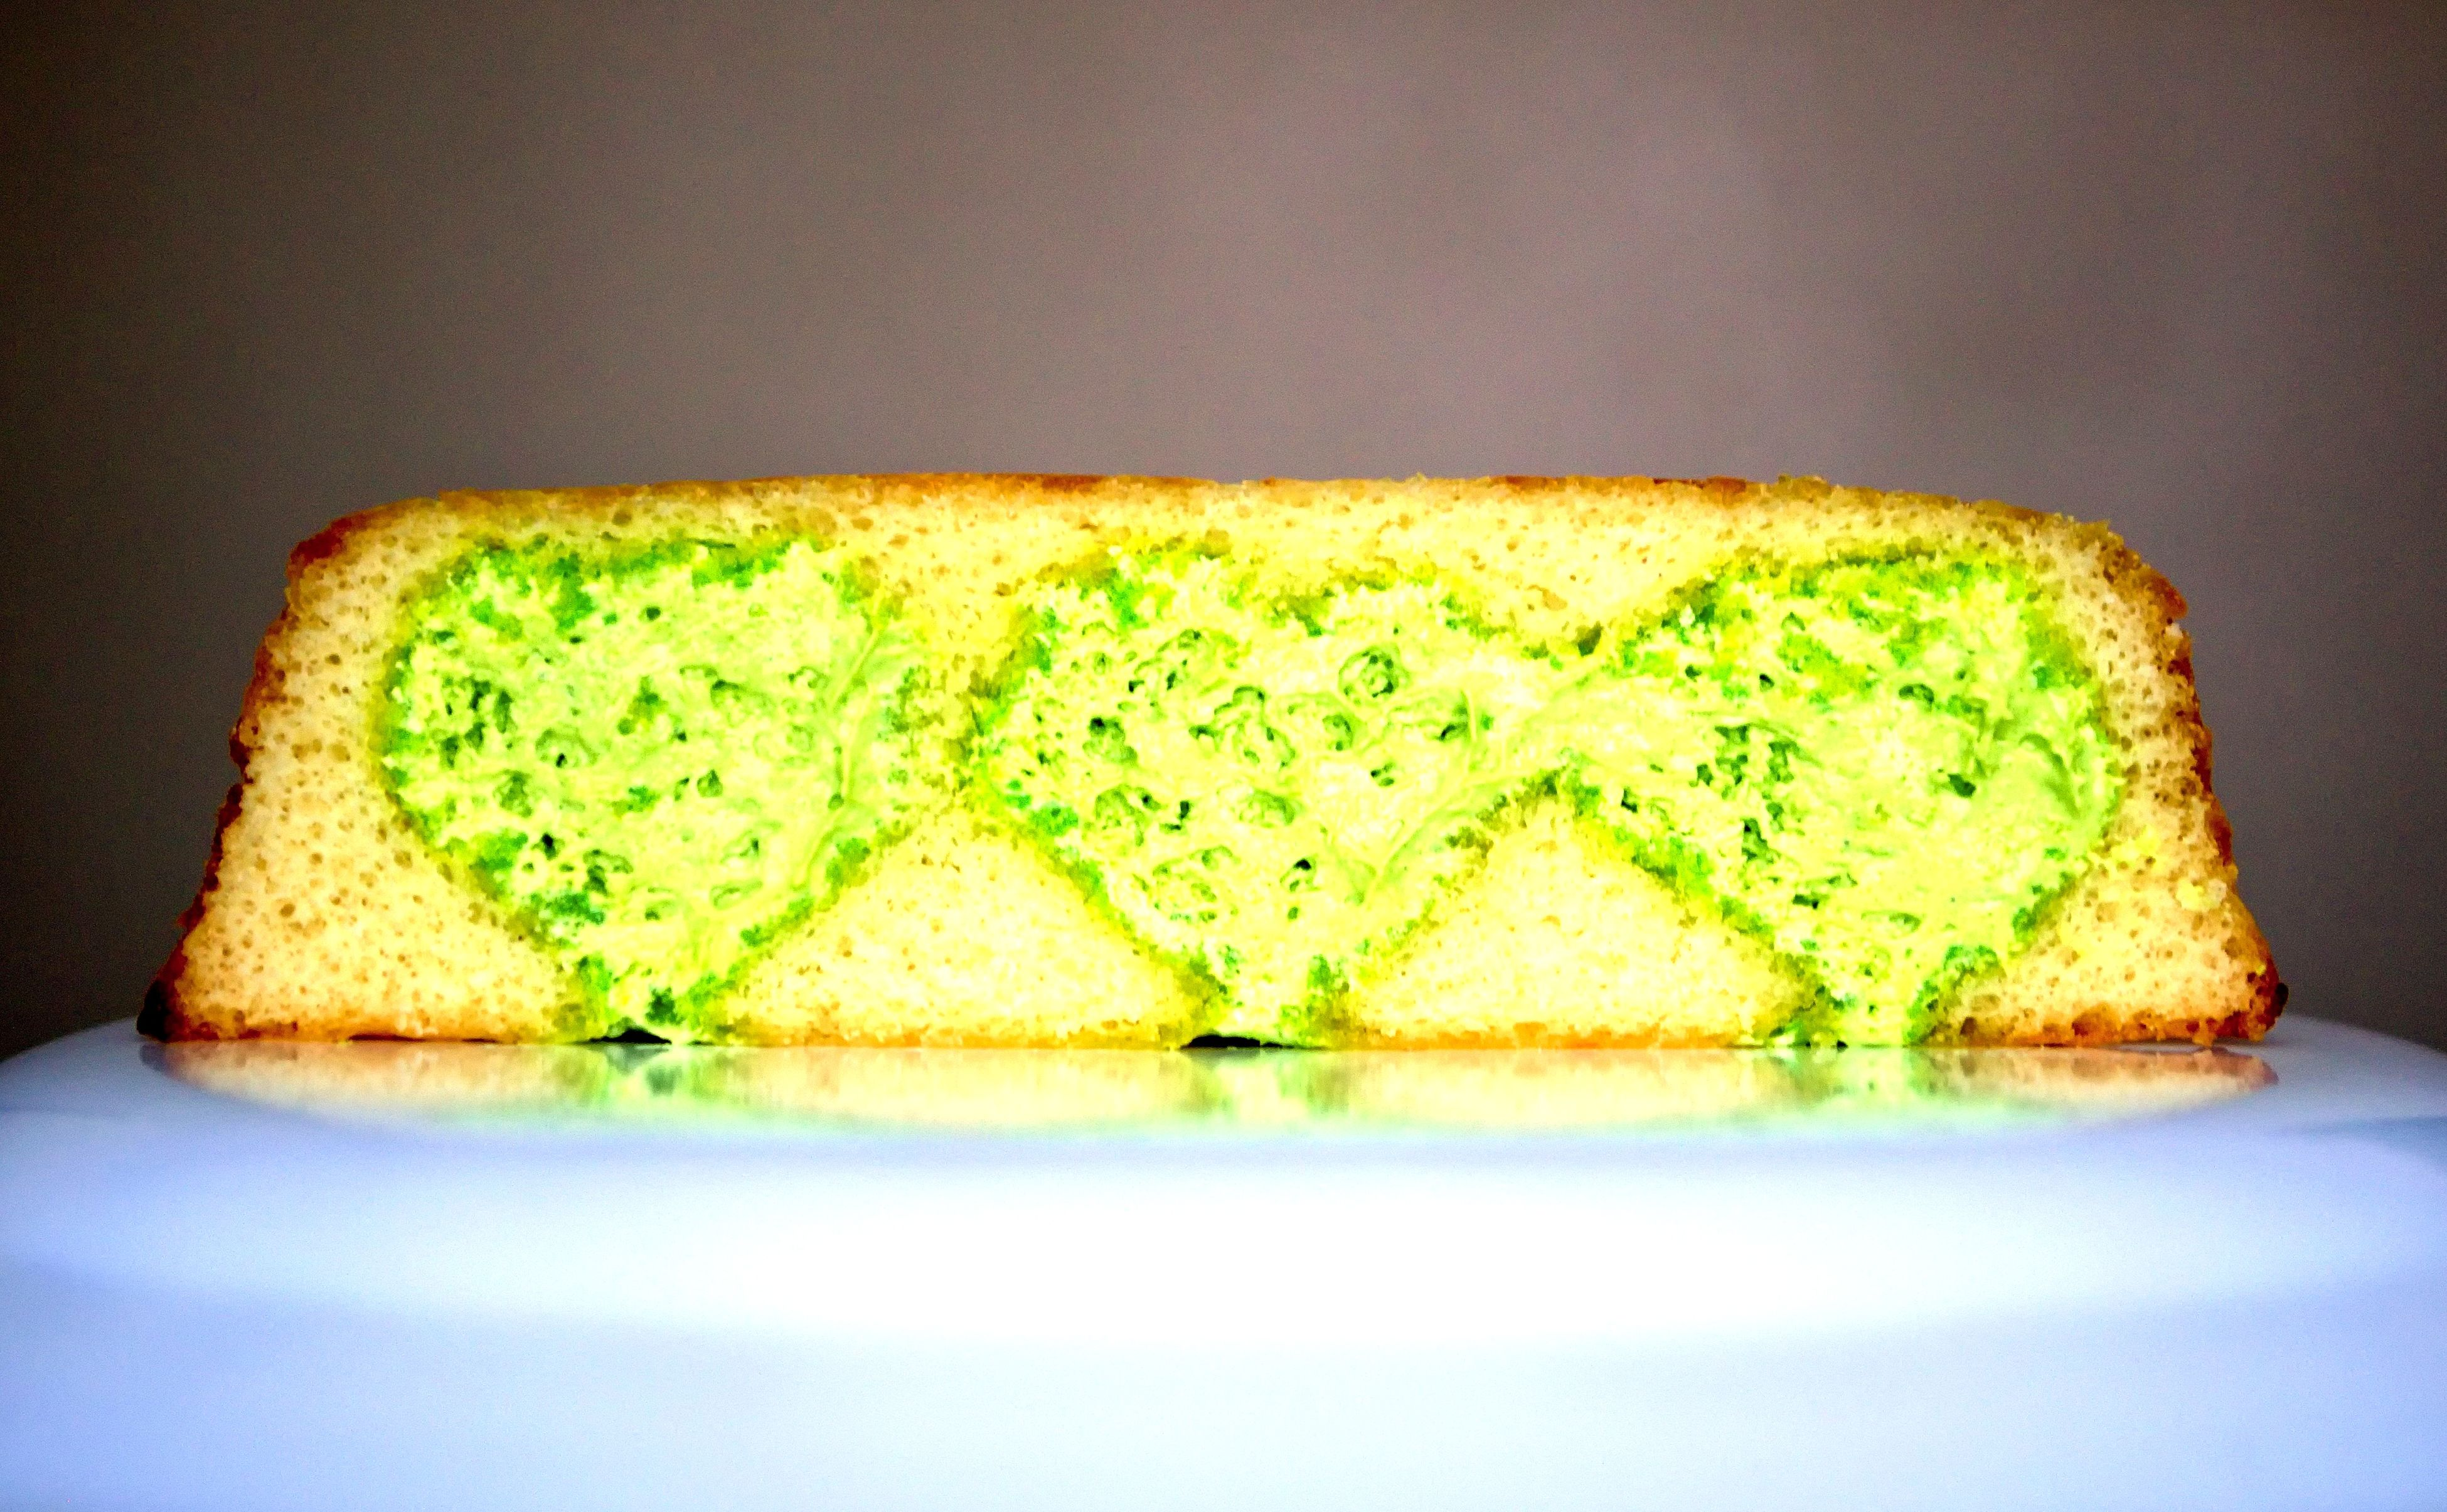 still life, food, close-up, green color, indulgence, no people, ready-to-eat, selective focus, focus on foreground, green